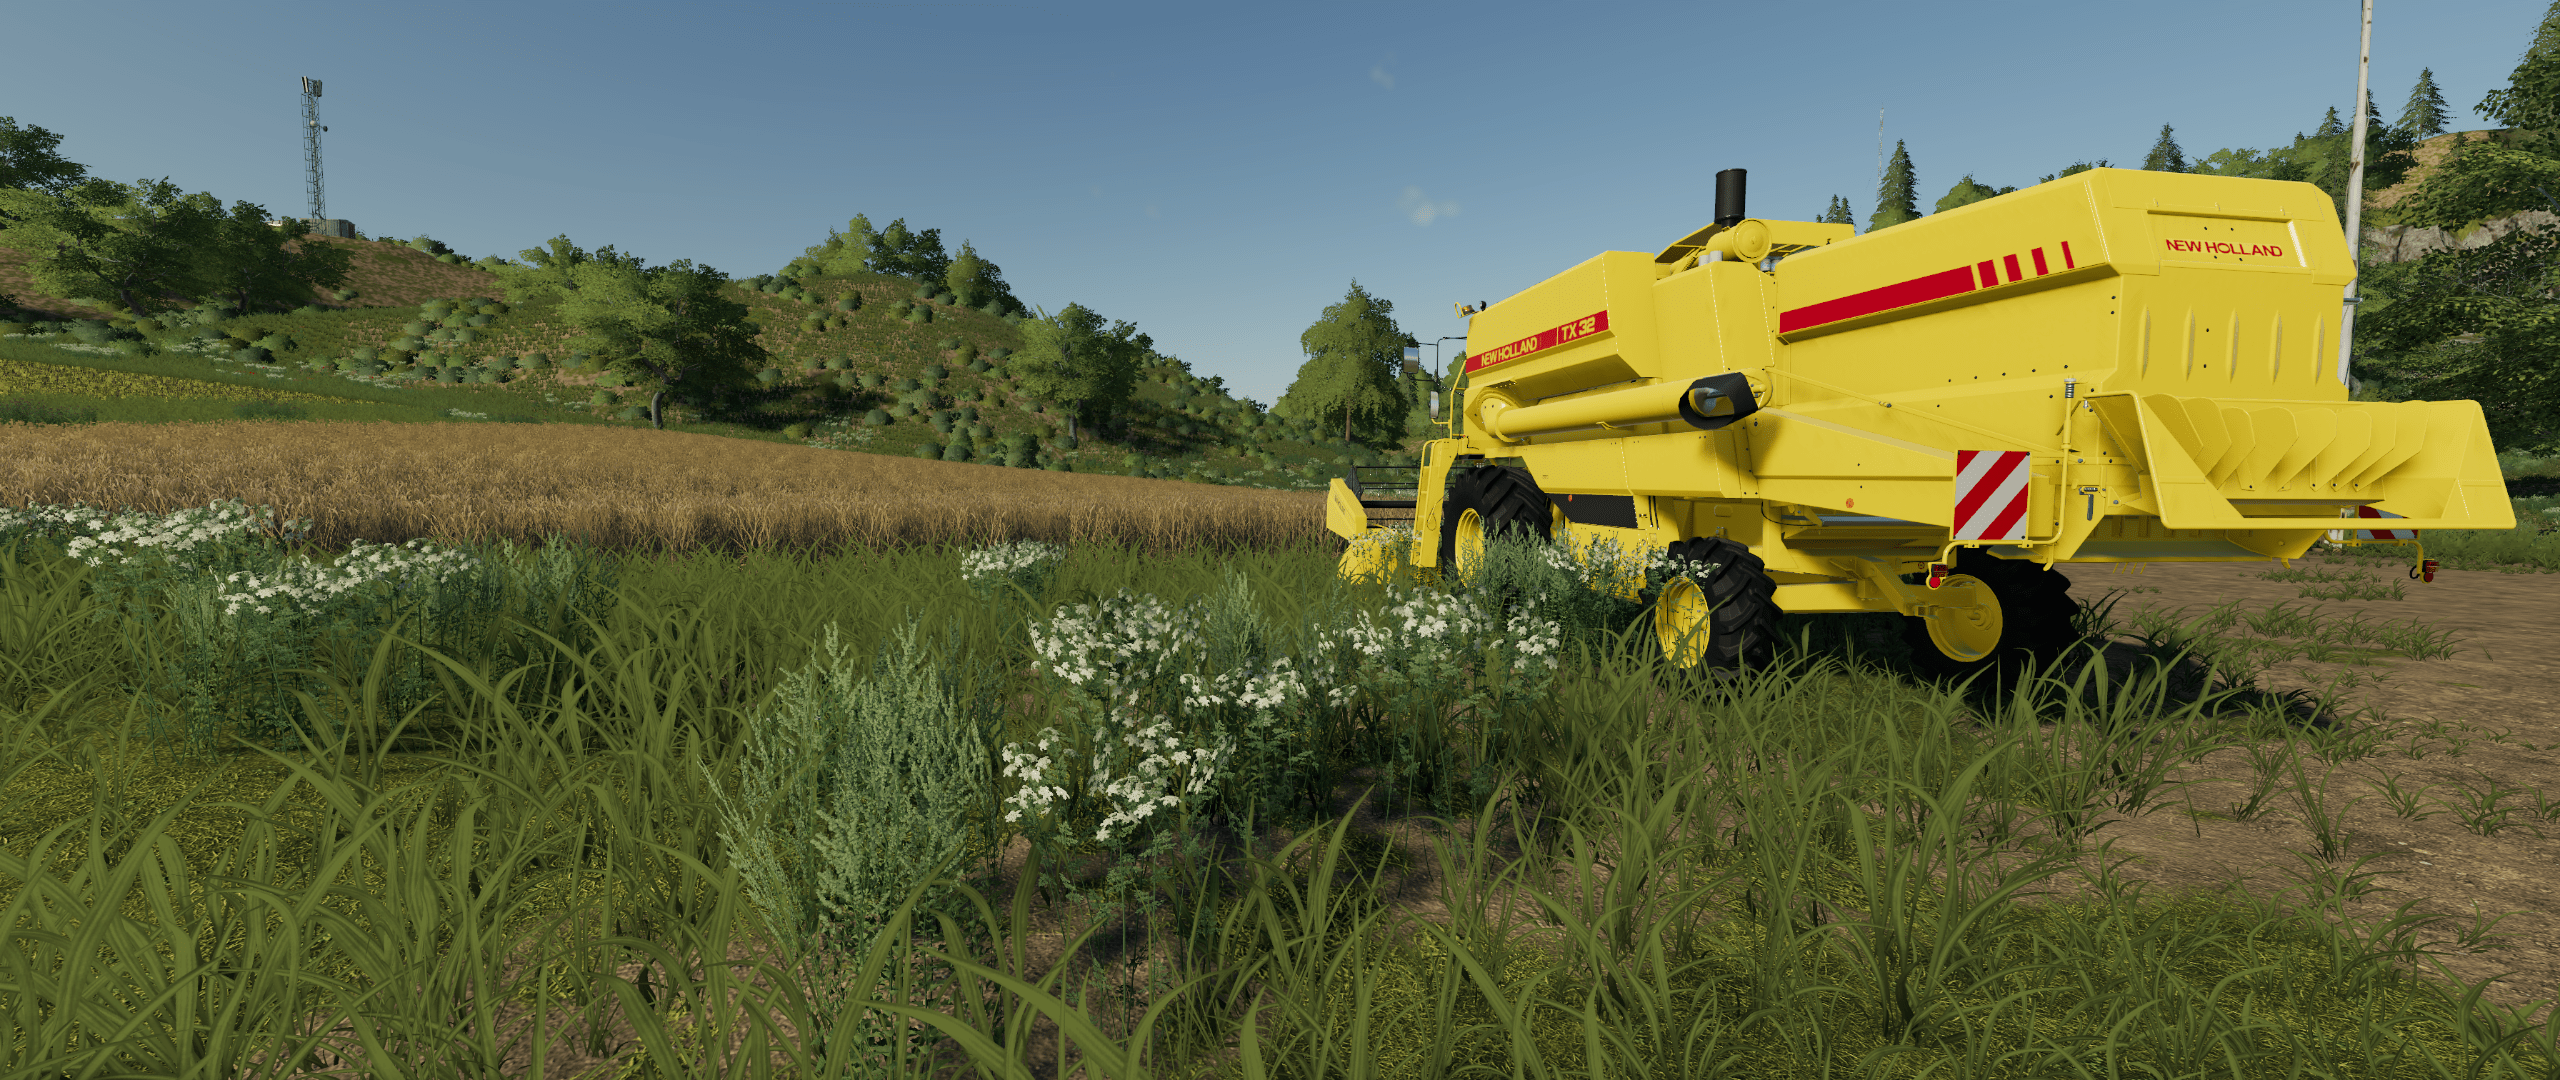 FS19 Reshade 4 0 2 Better Colors & Realism by animatiV - Farming